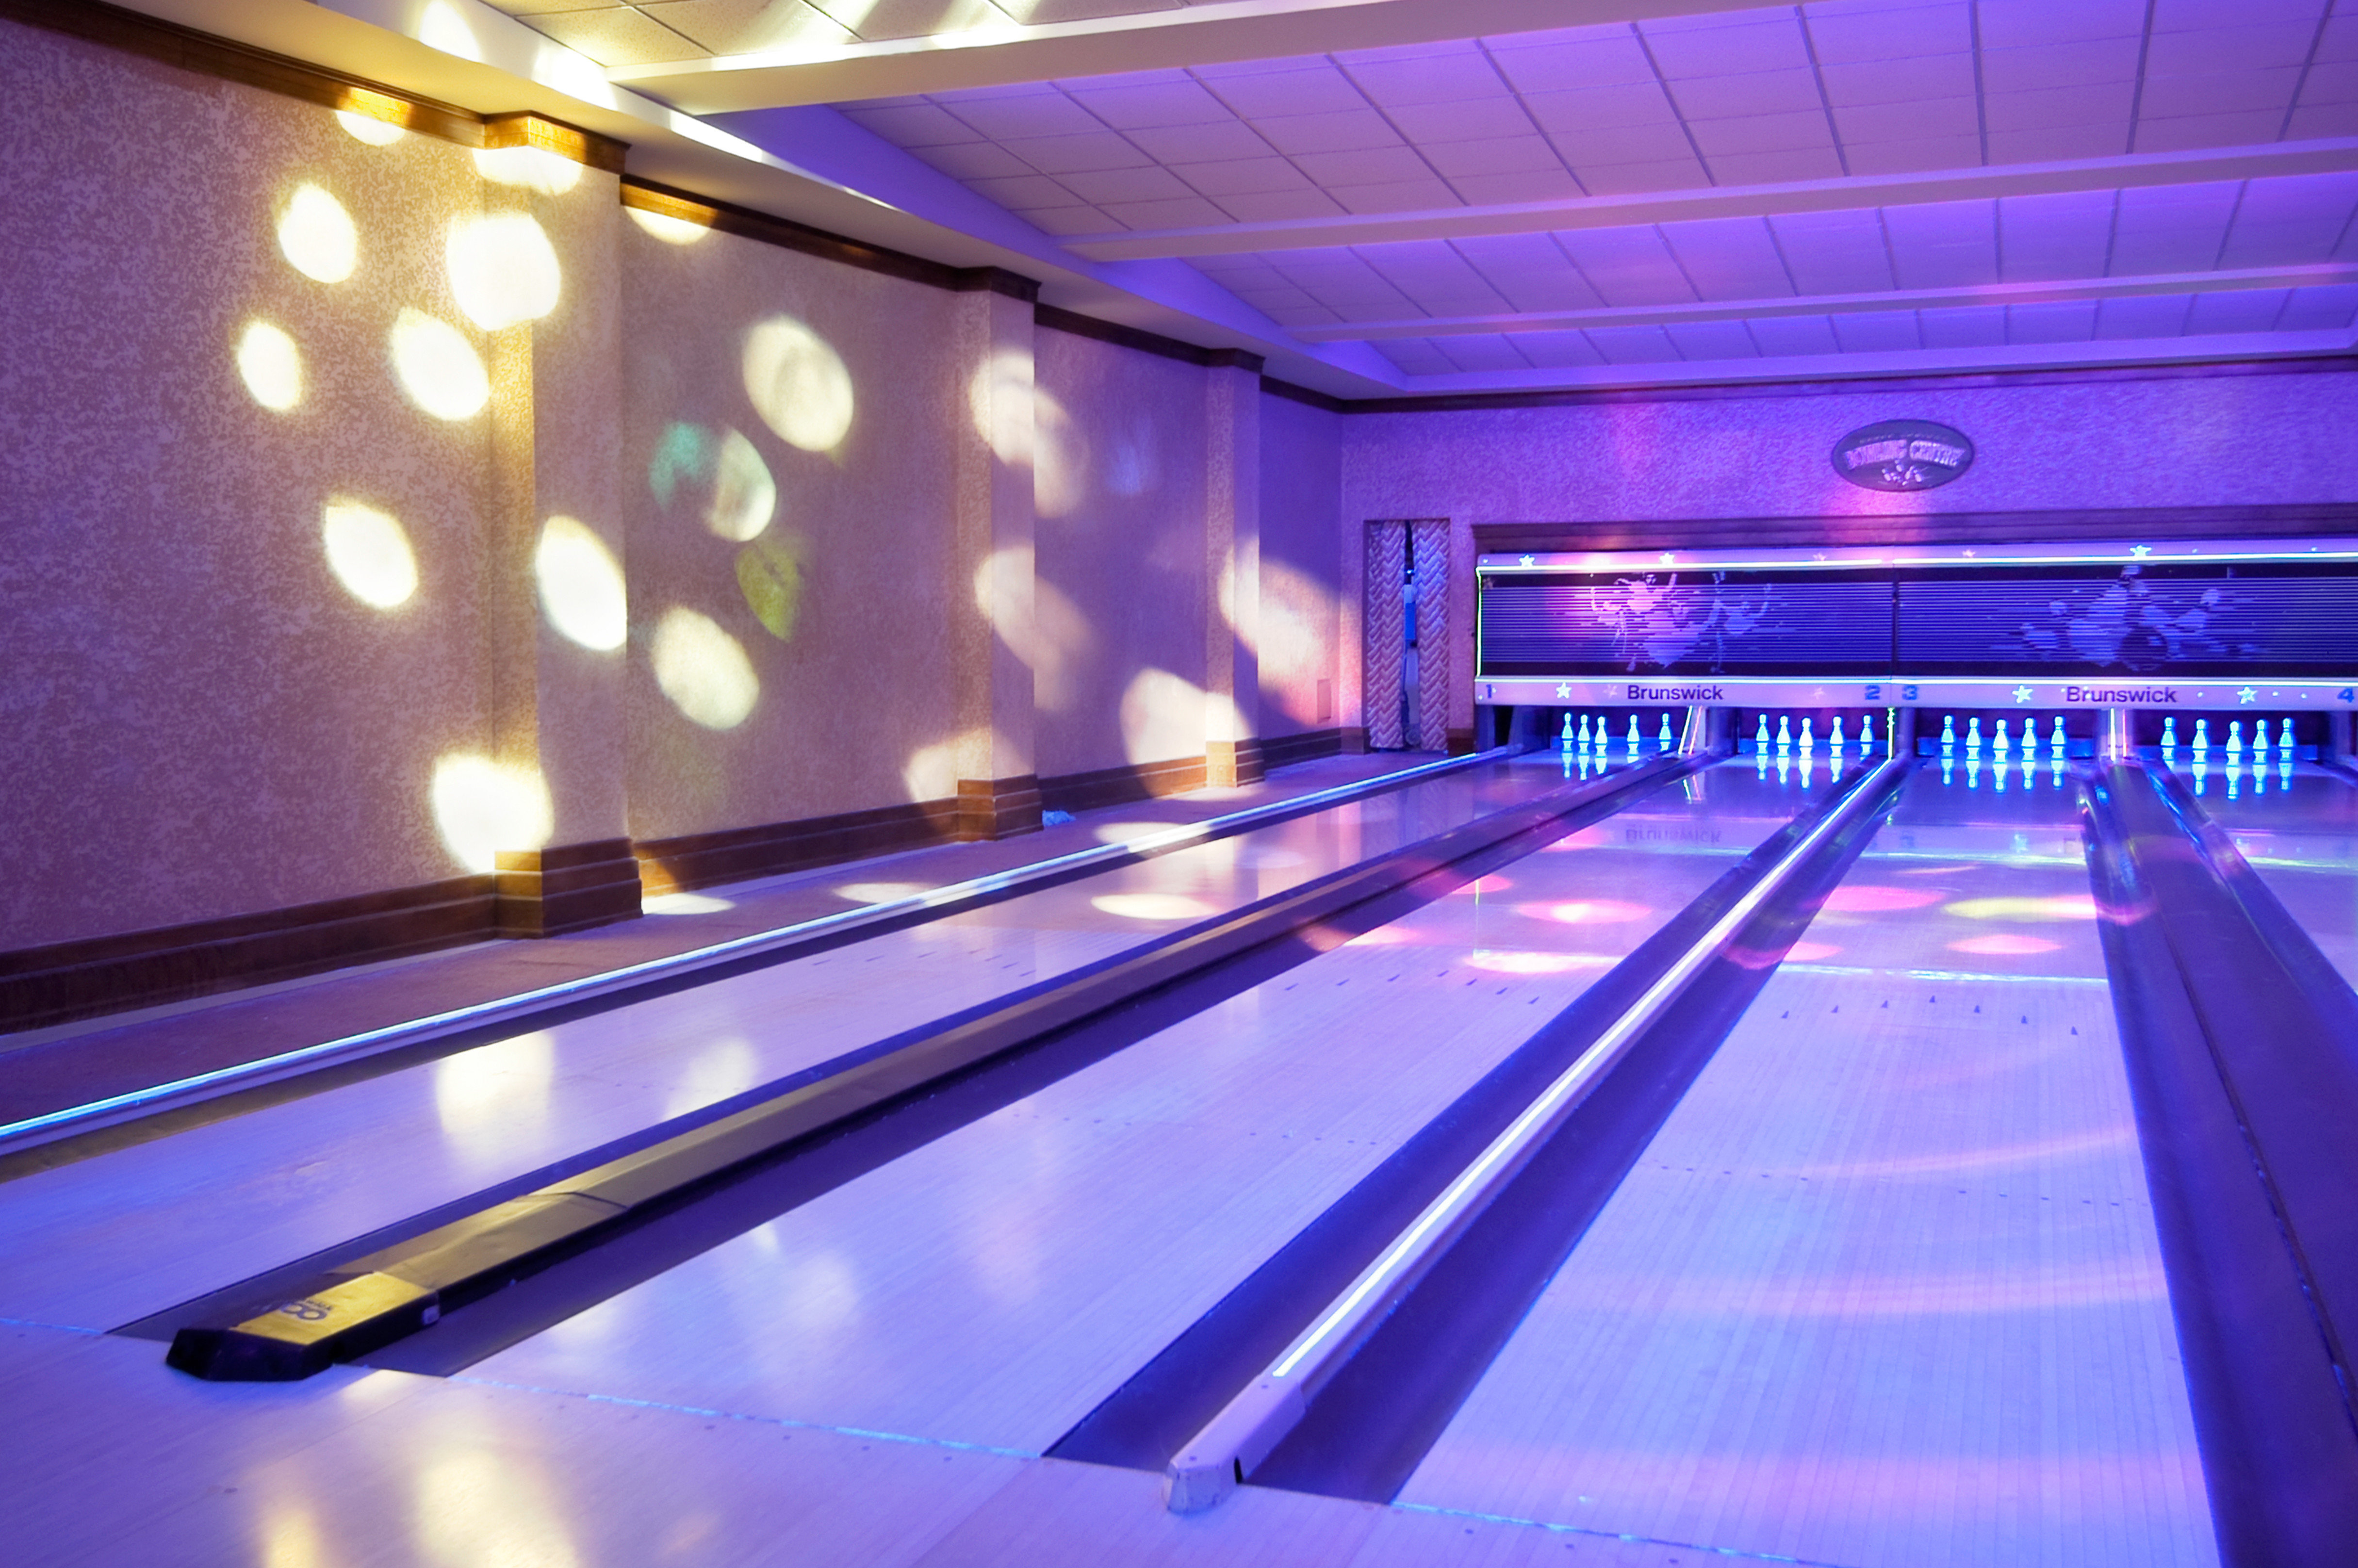 Entertainment Nightlife Play Resort bowling ten pin bowling ball game sports Sport team sport leisure centre individual sports billiard room luxury vehicle